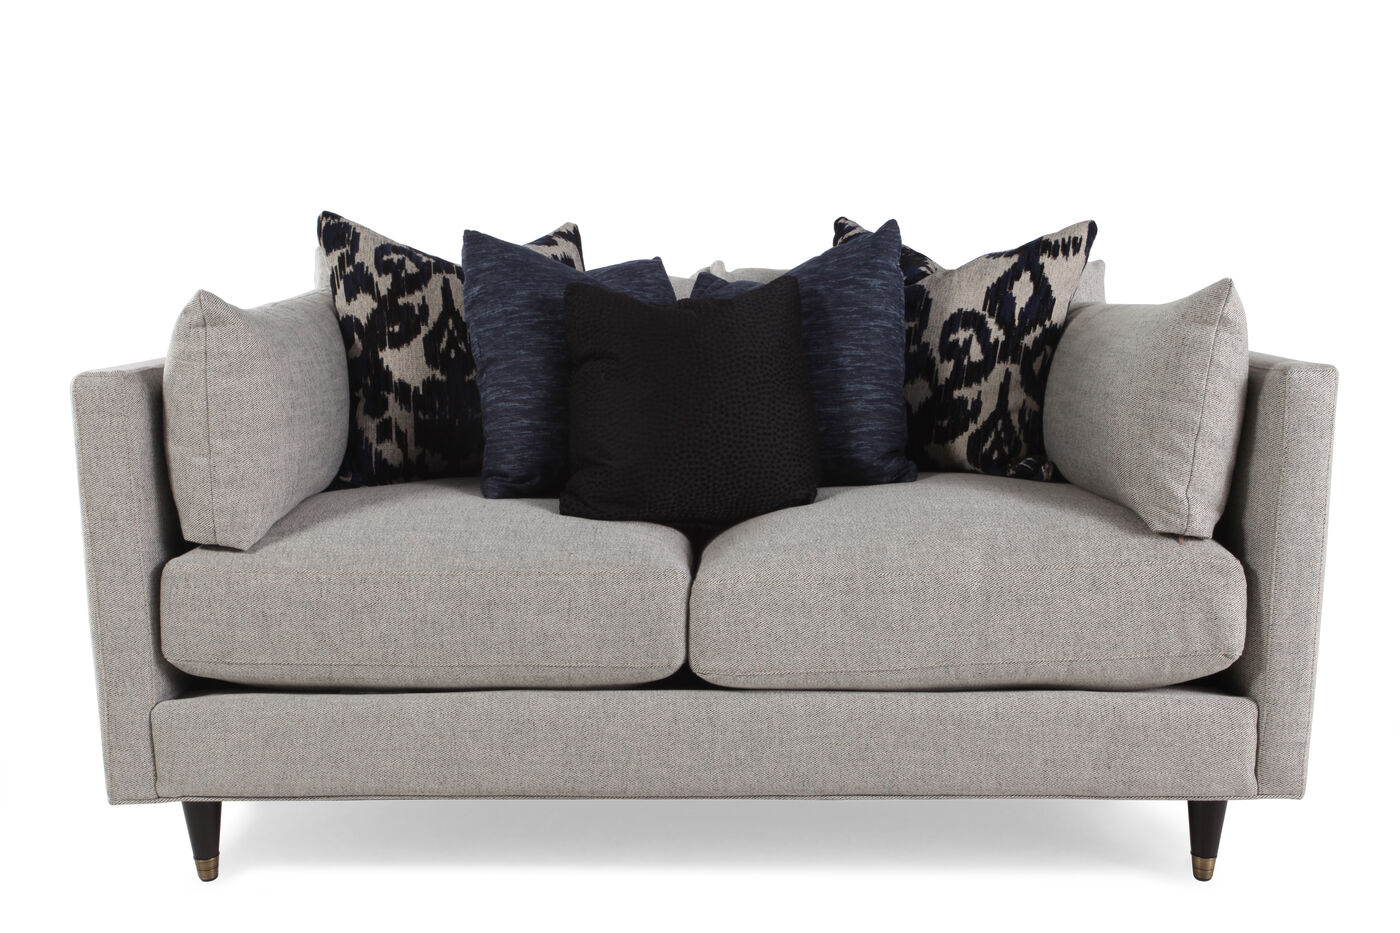 Jonathan Louis Sofa Jonathan Louis Choices Orion Sectional Homeworld Furniture Thesofa